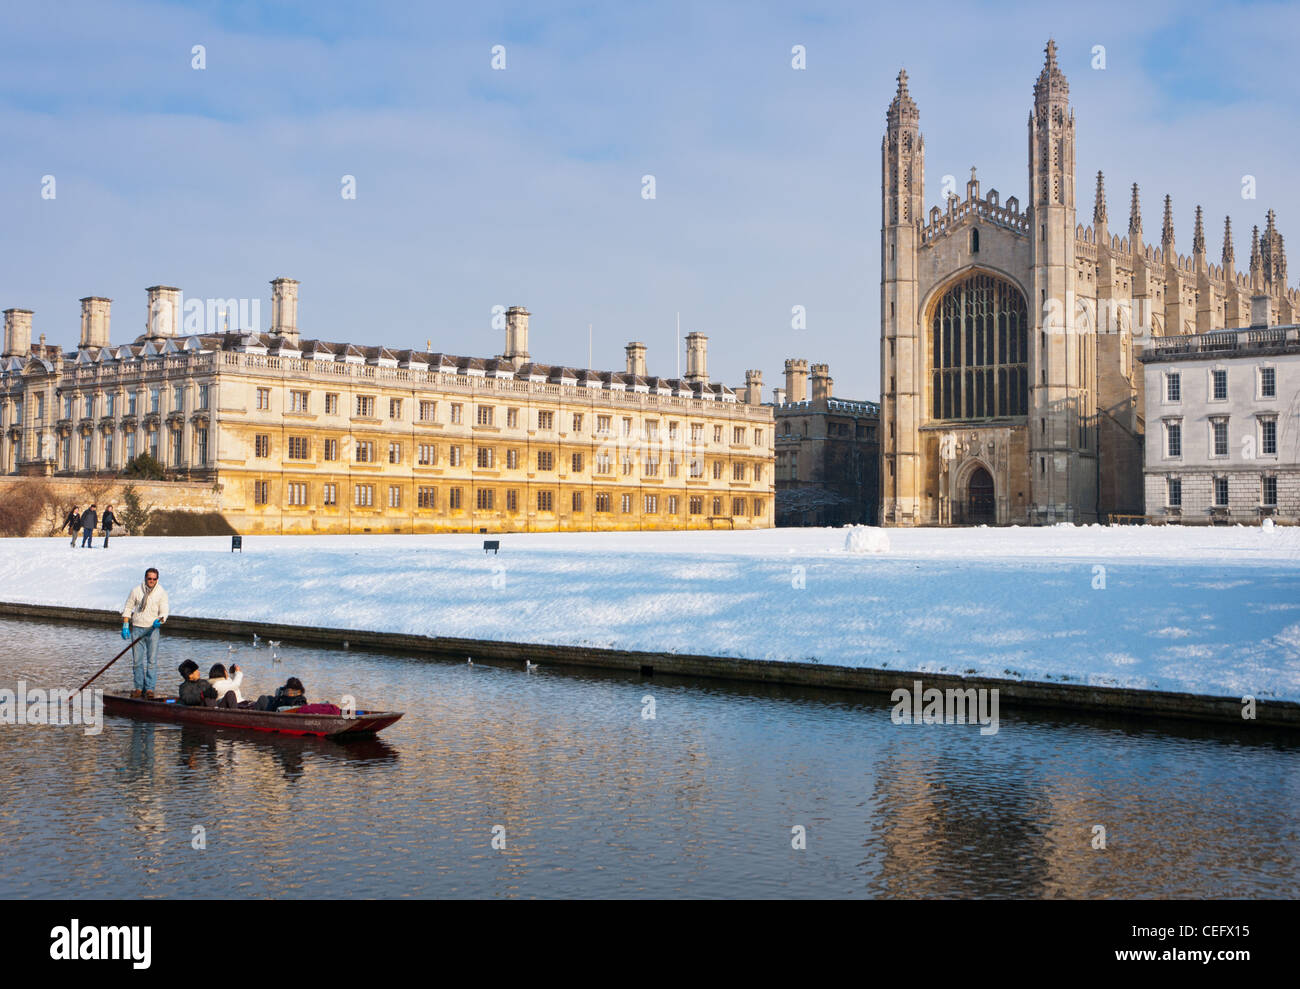 punting-along-river-cam-in-winter-snow-w